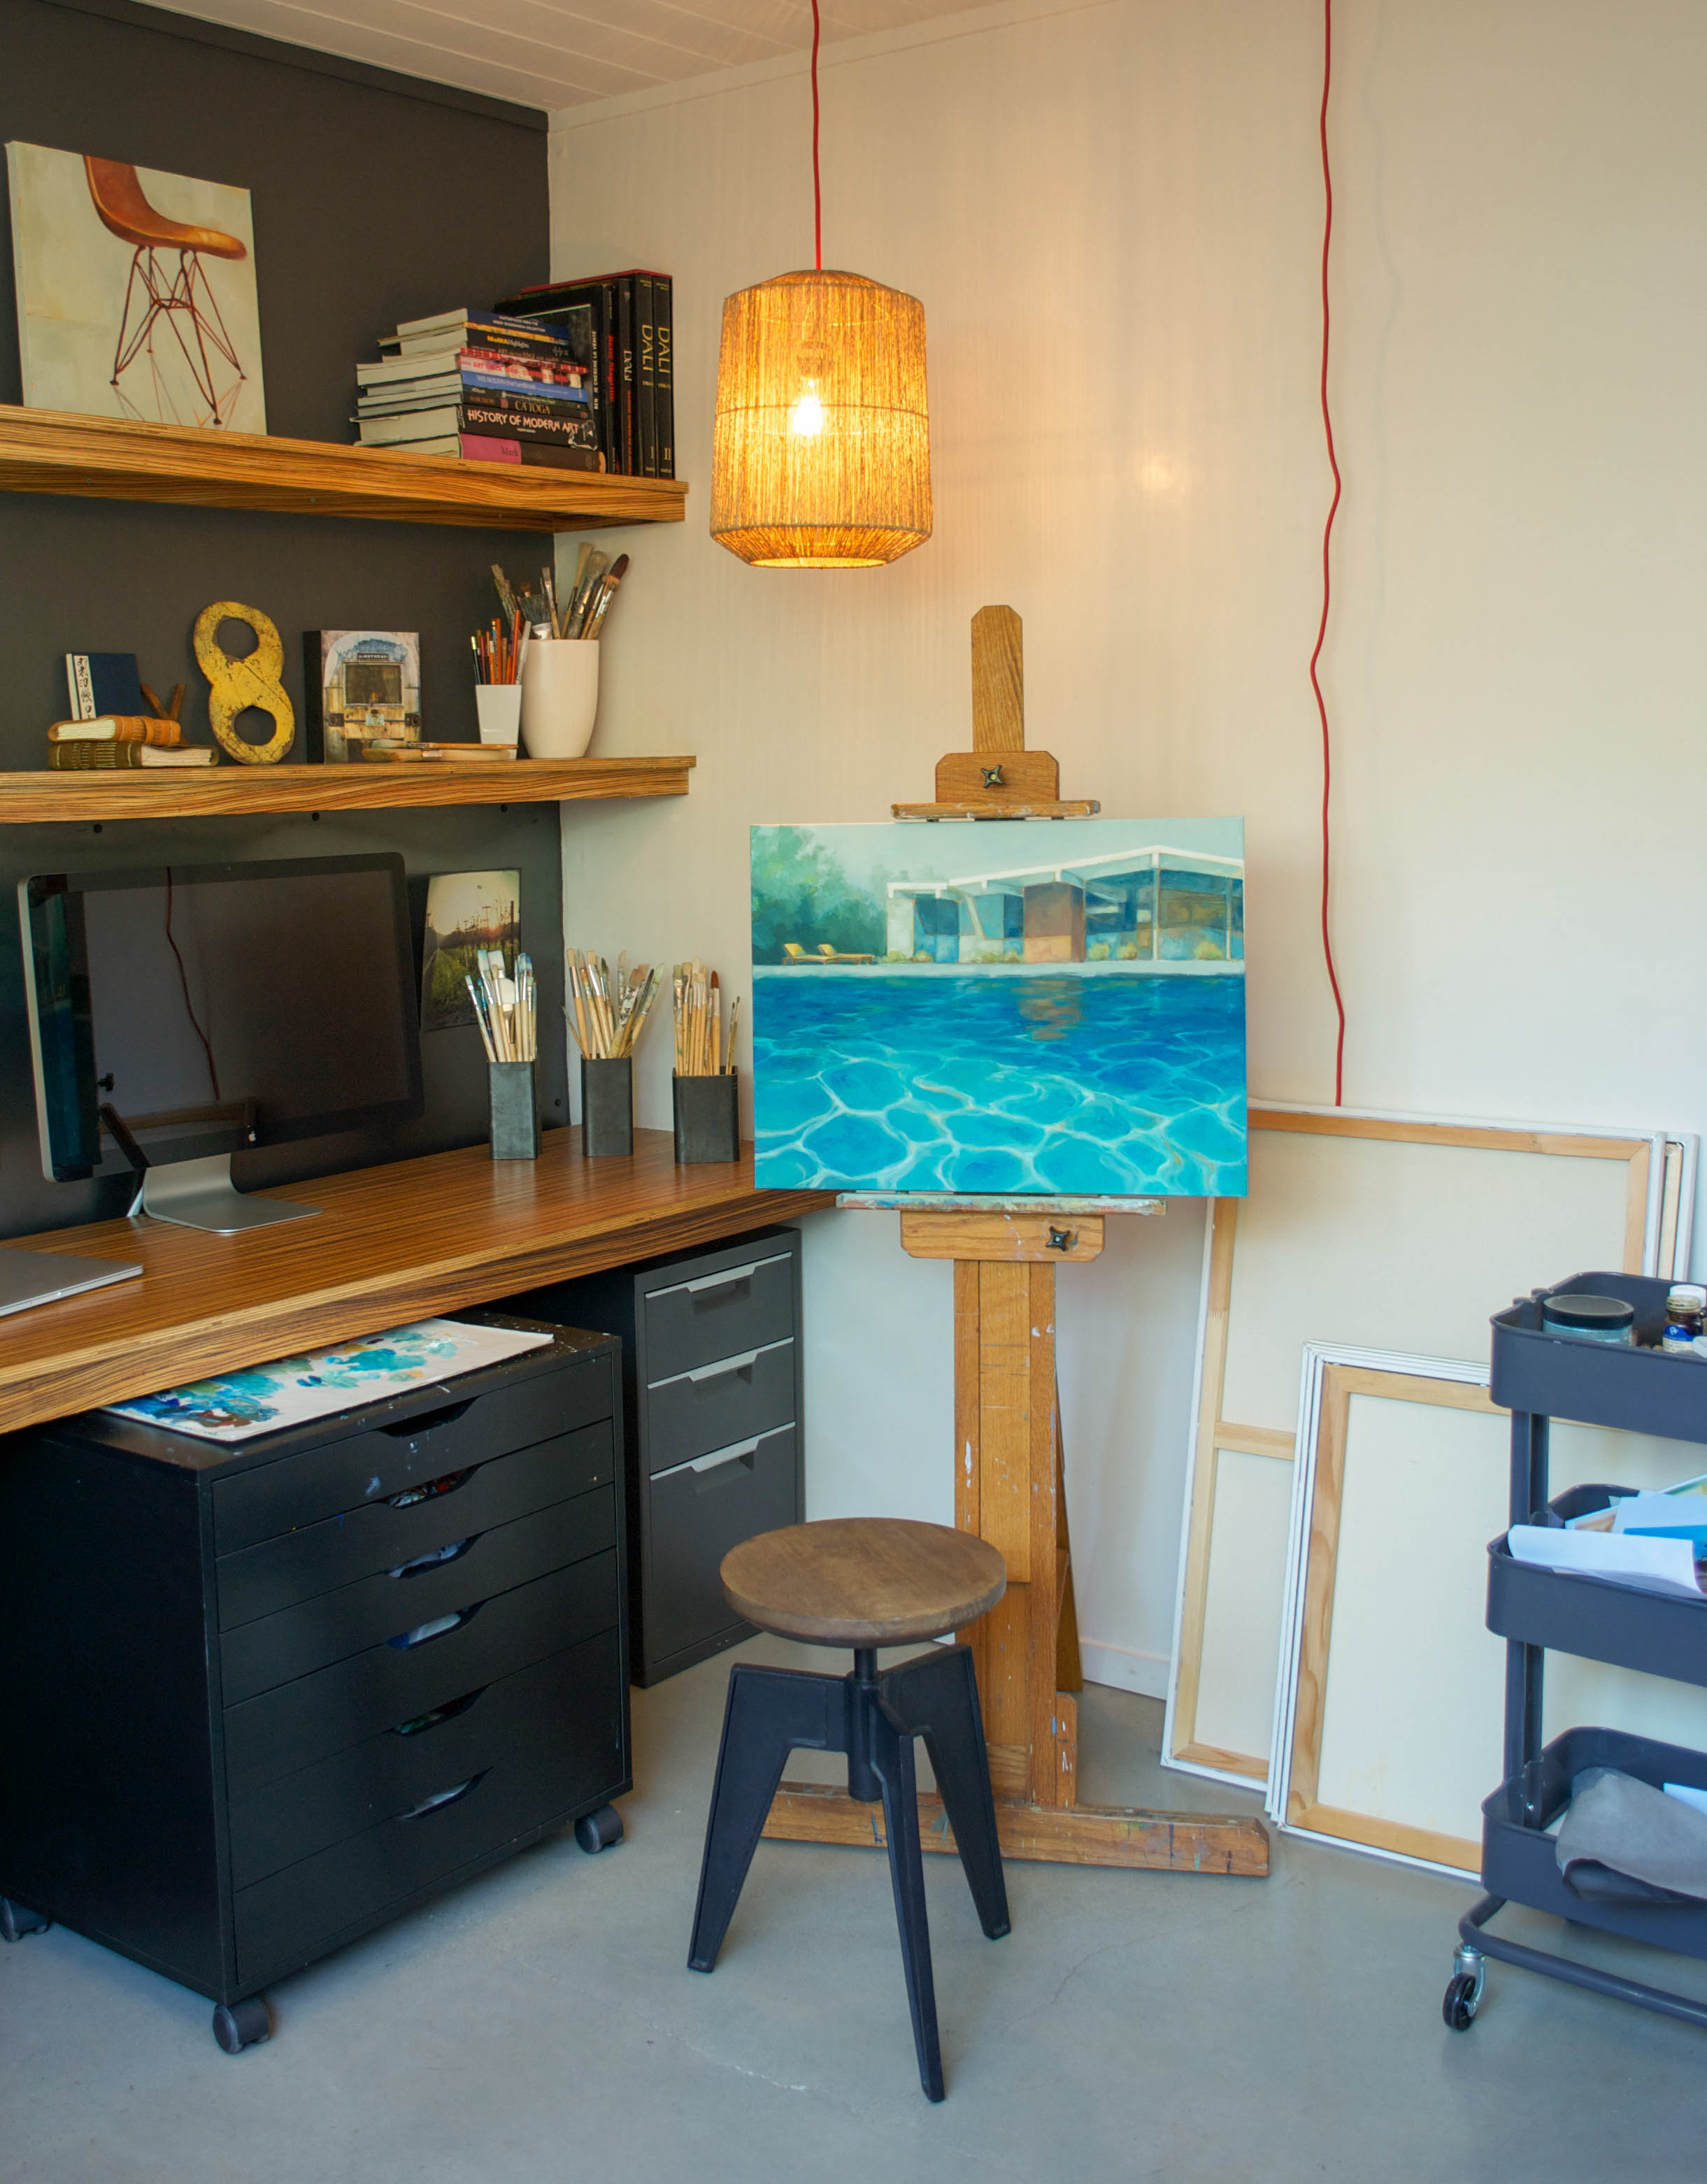 I mentioned to Laura that I know we would hit it off in person as we have the same art books filling our shelves. I adore the pendant that hangs above her easel & this painting truly captures the California lifestyle that Laura is inspired by.